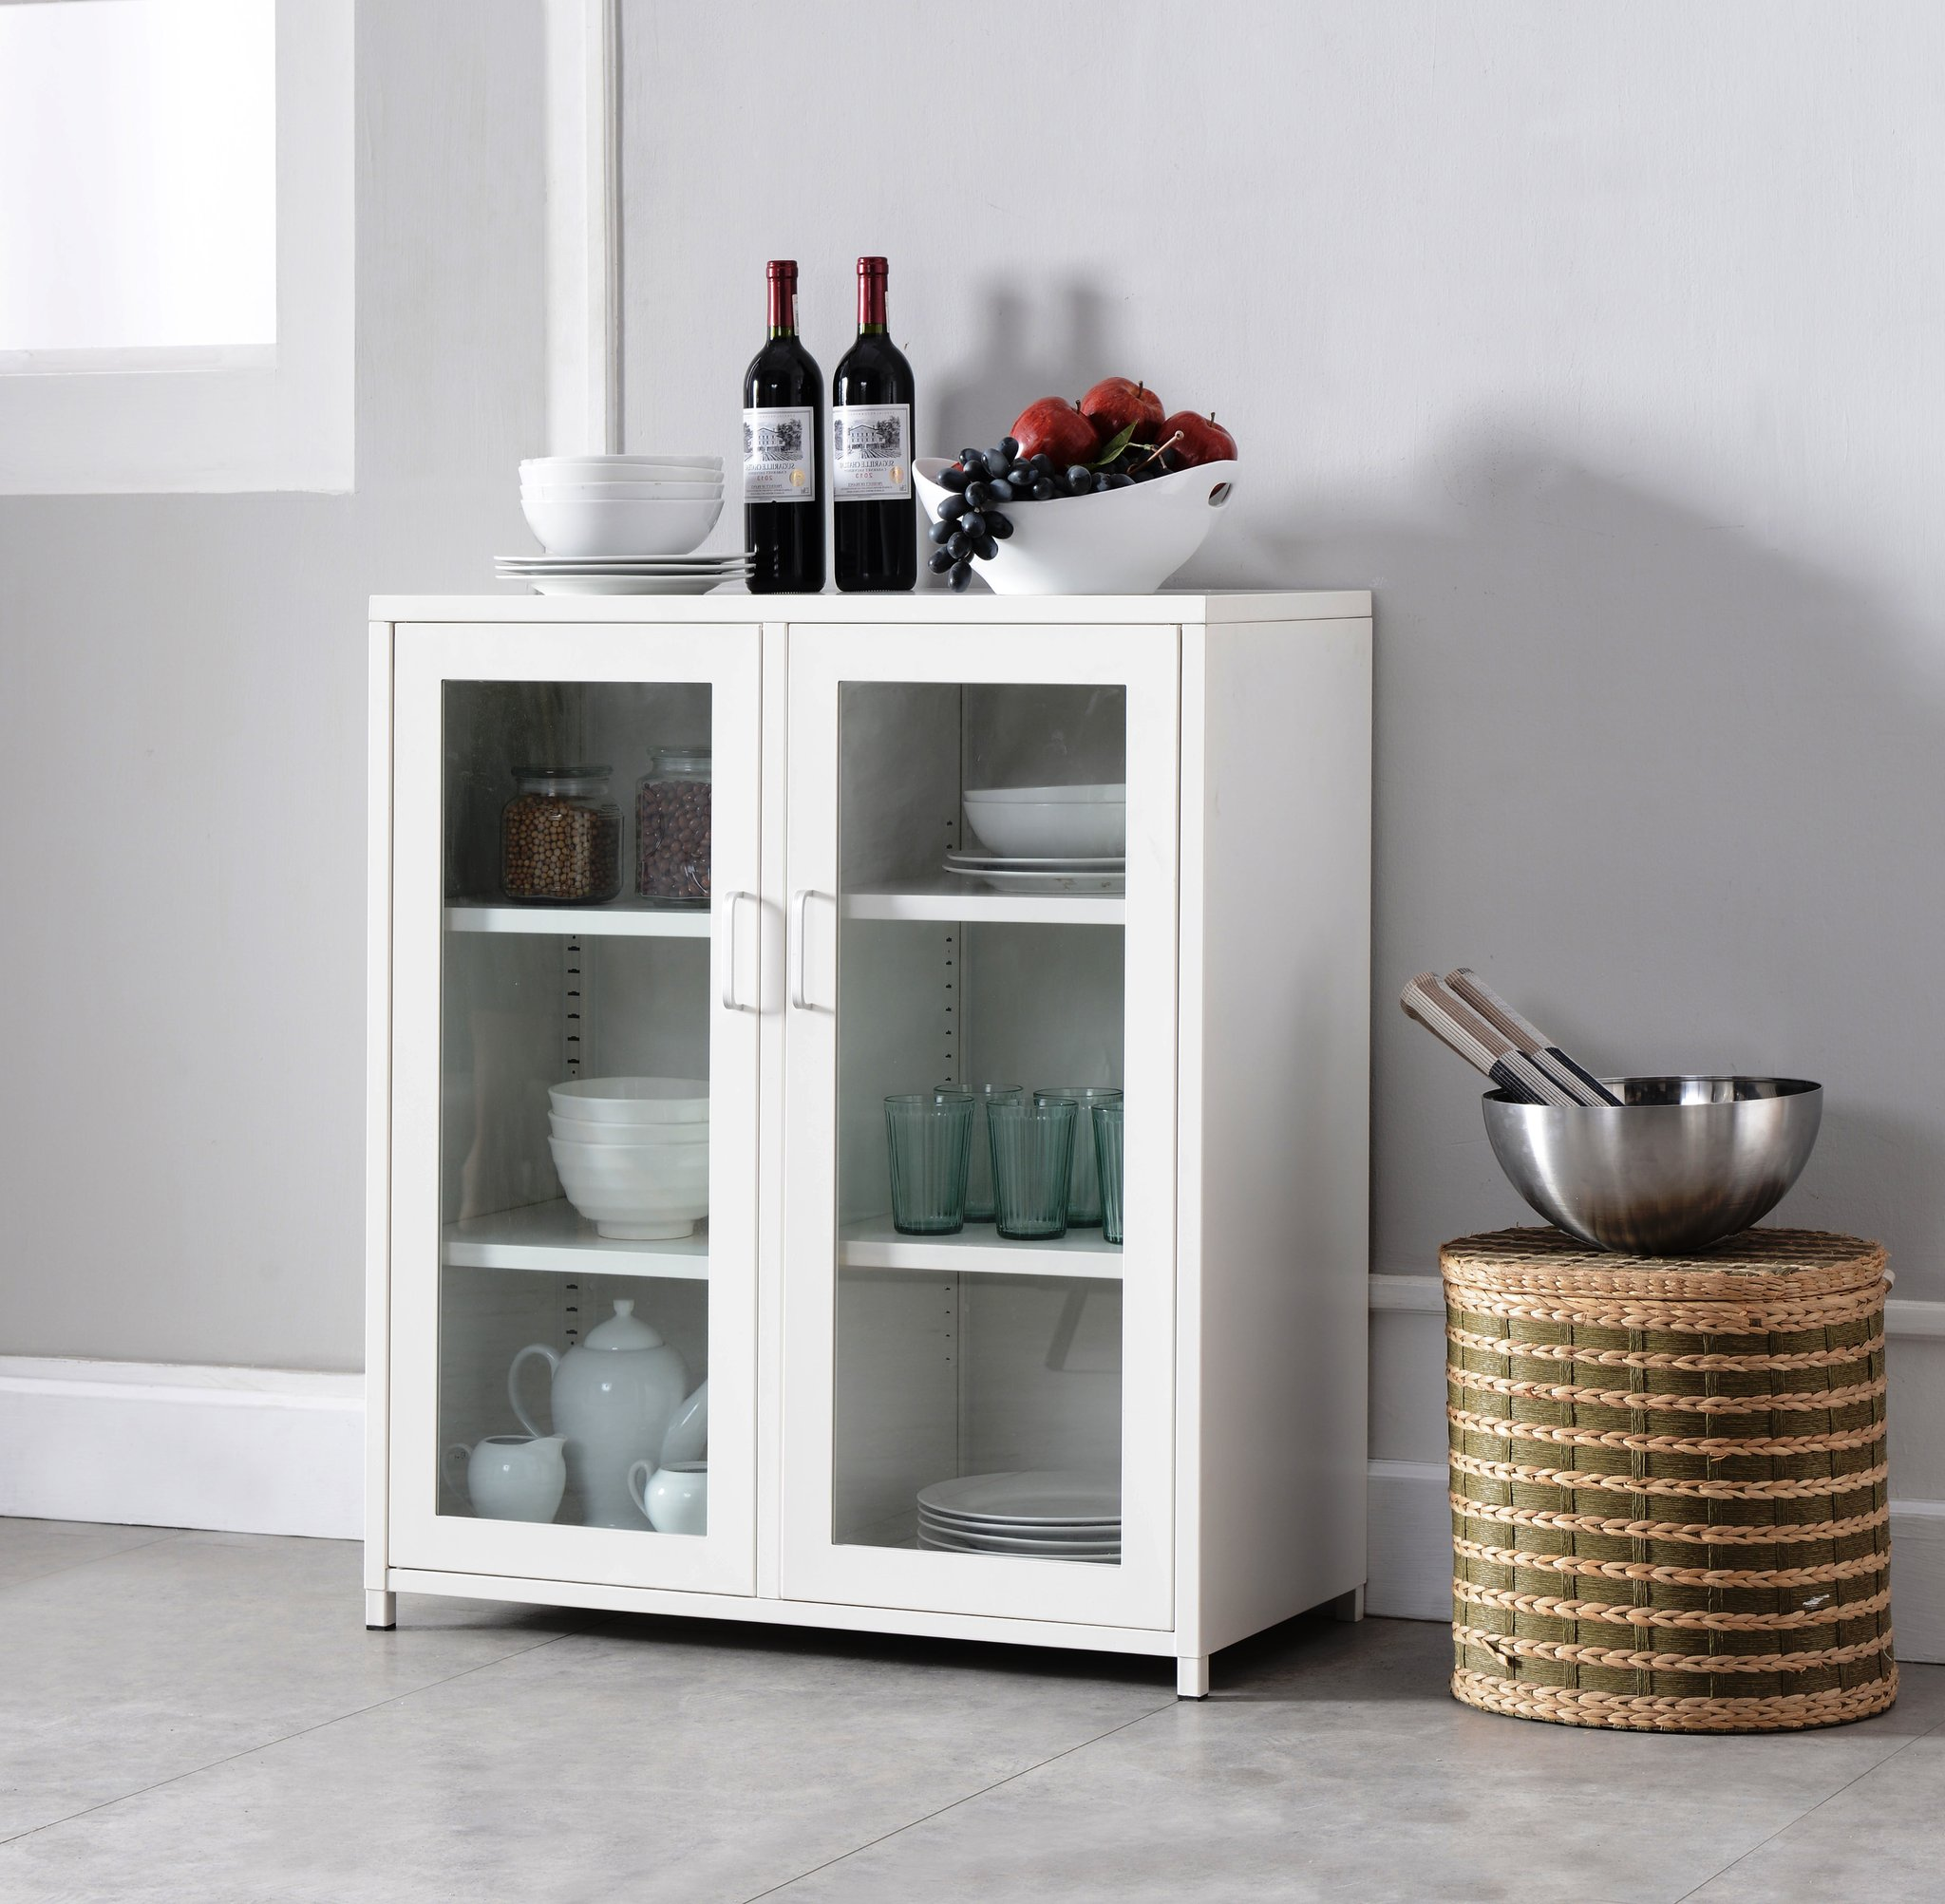 markle white iron transitional kitchen storage accent cabinet buffet table with glass doors shelves wood dining room and chairs best drum seat pier one wicker furniture vintage